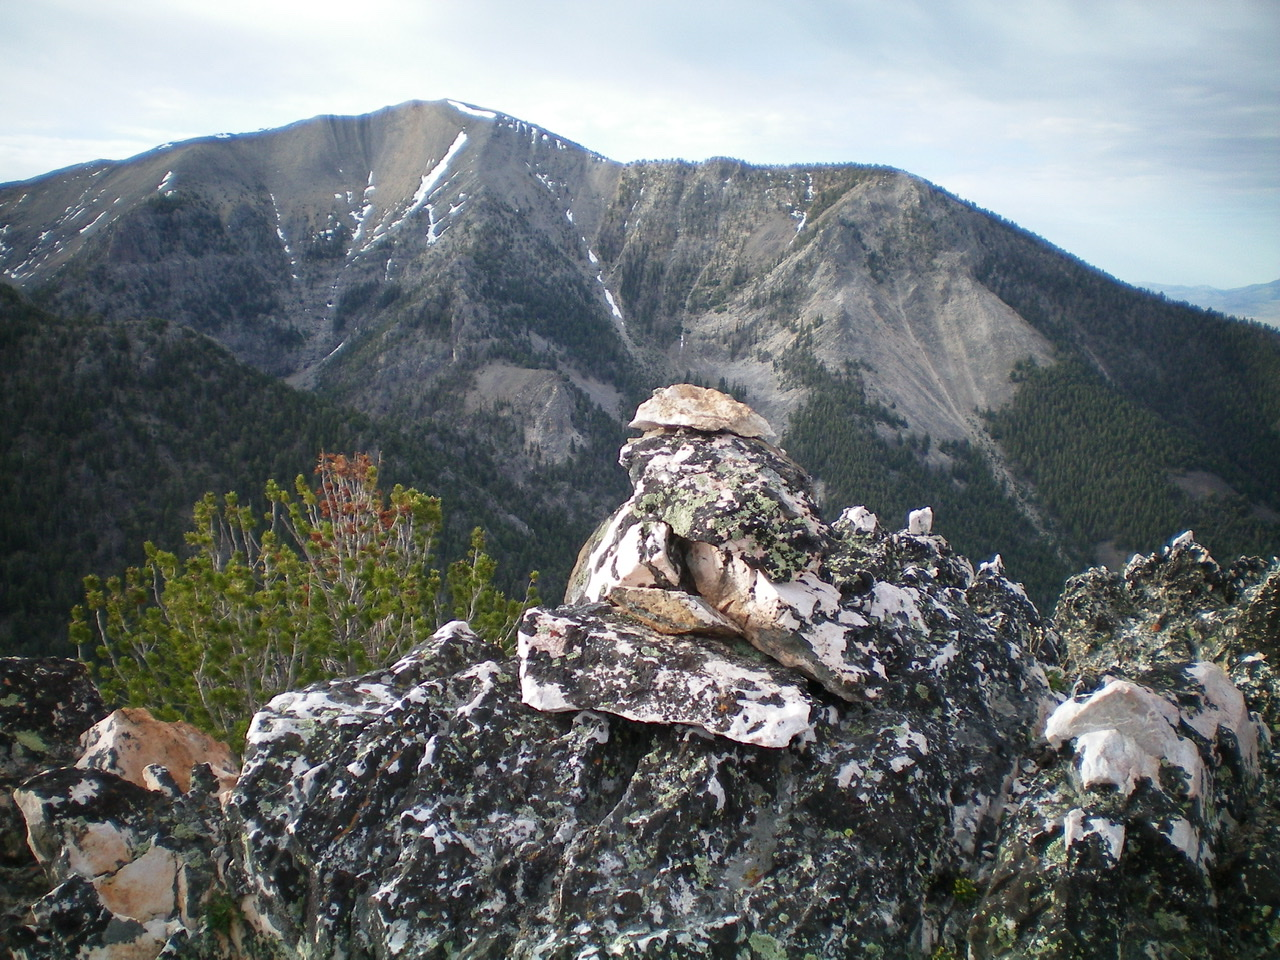 The summit cairn atop the highest rocky outcrop atop Peak 9634. Peak 10954 is in the background. Livingston Douglas Photo